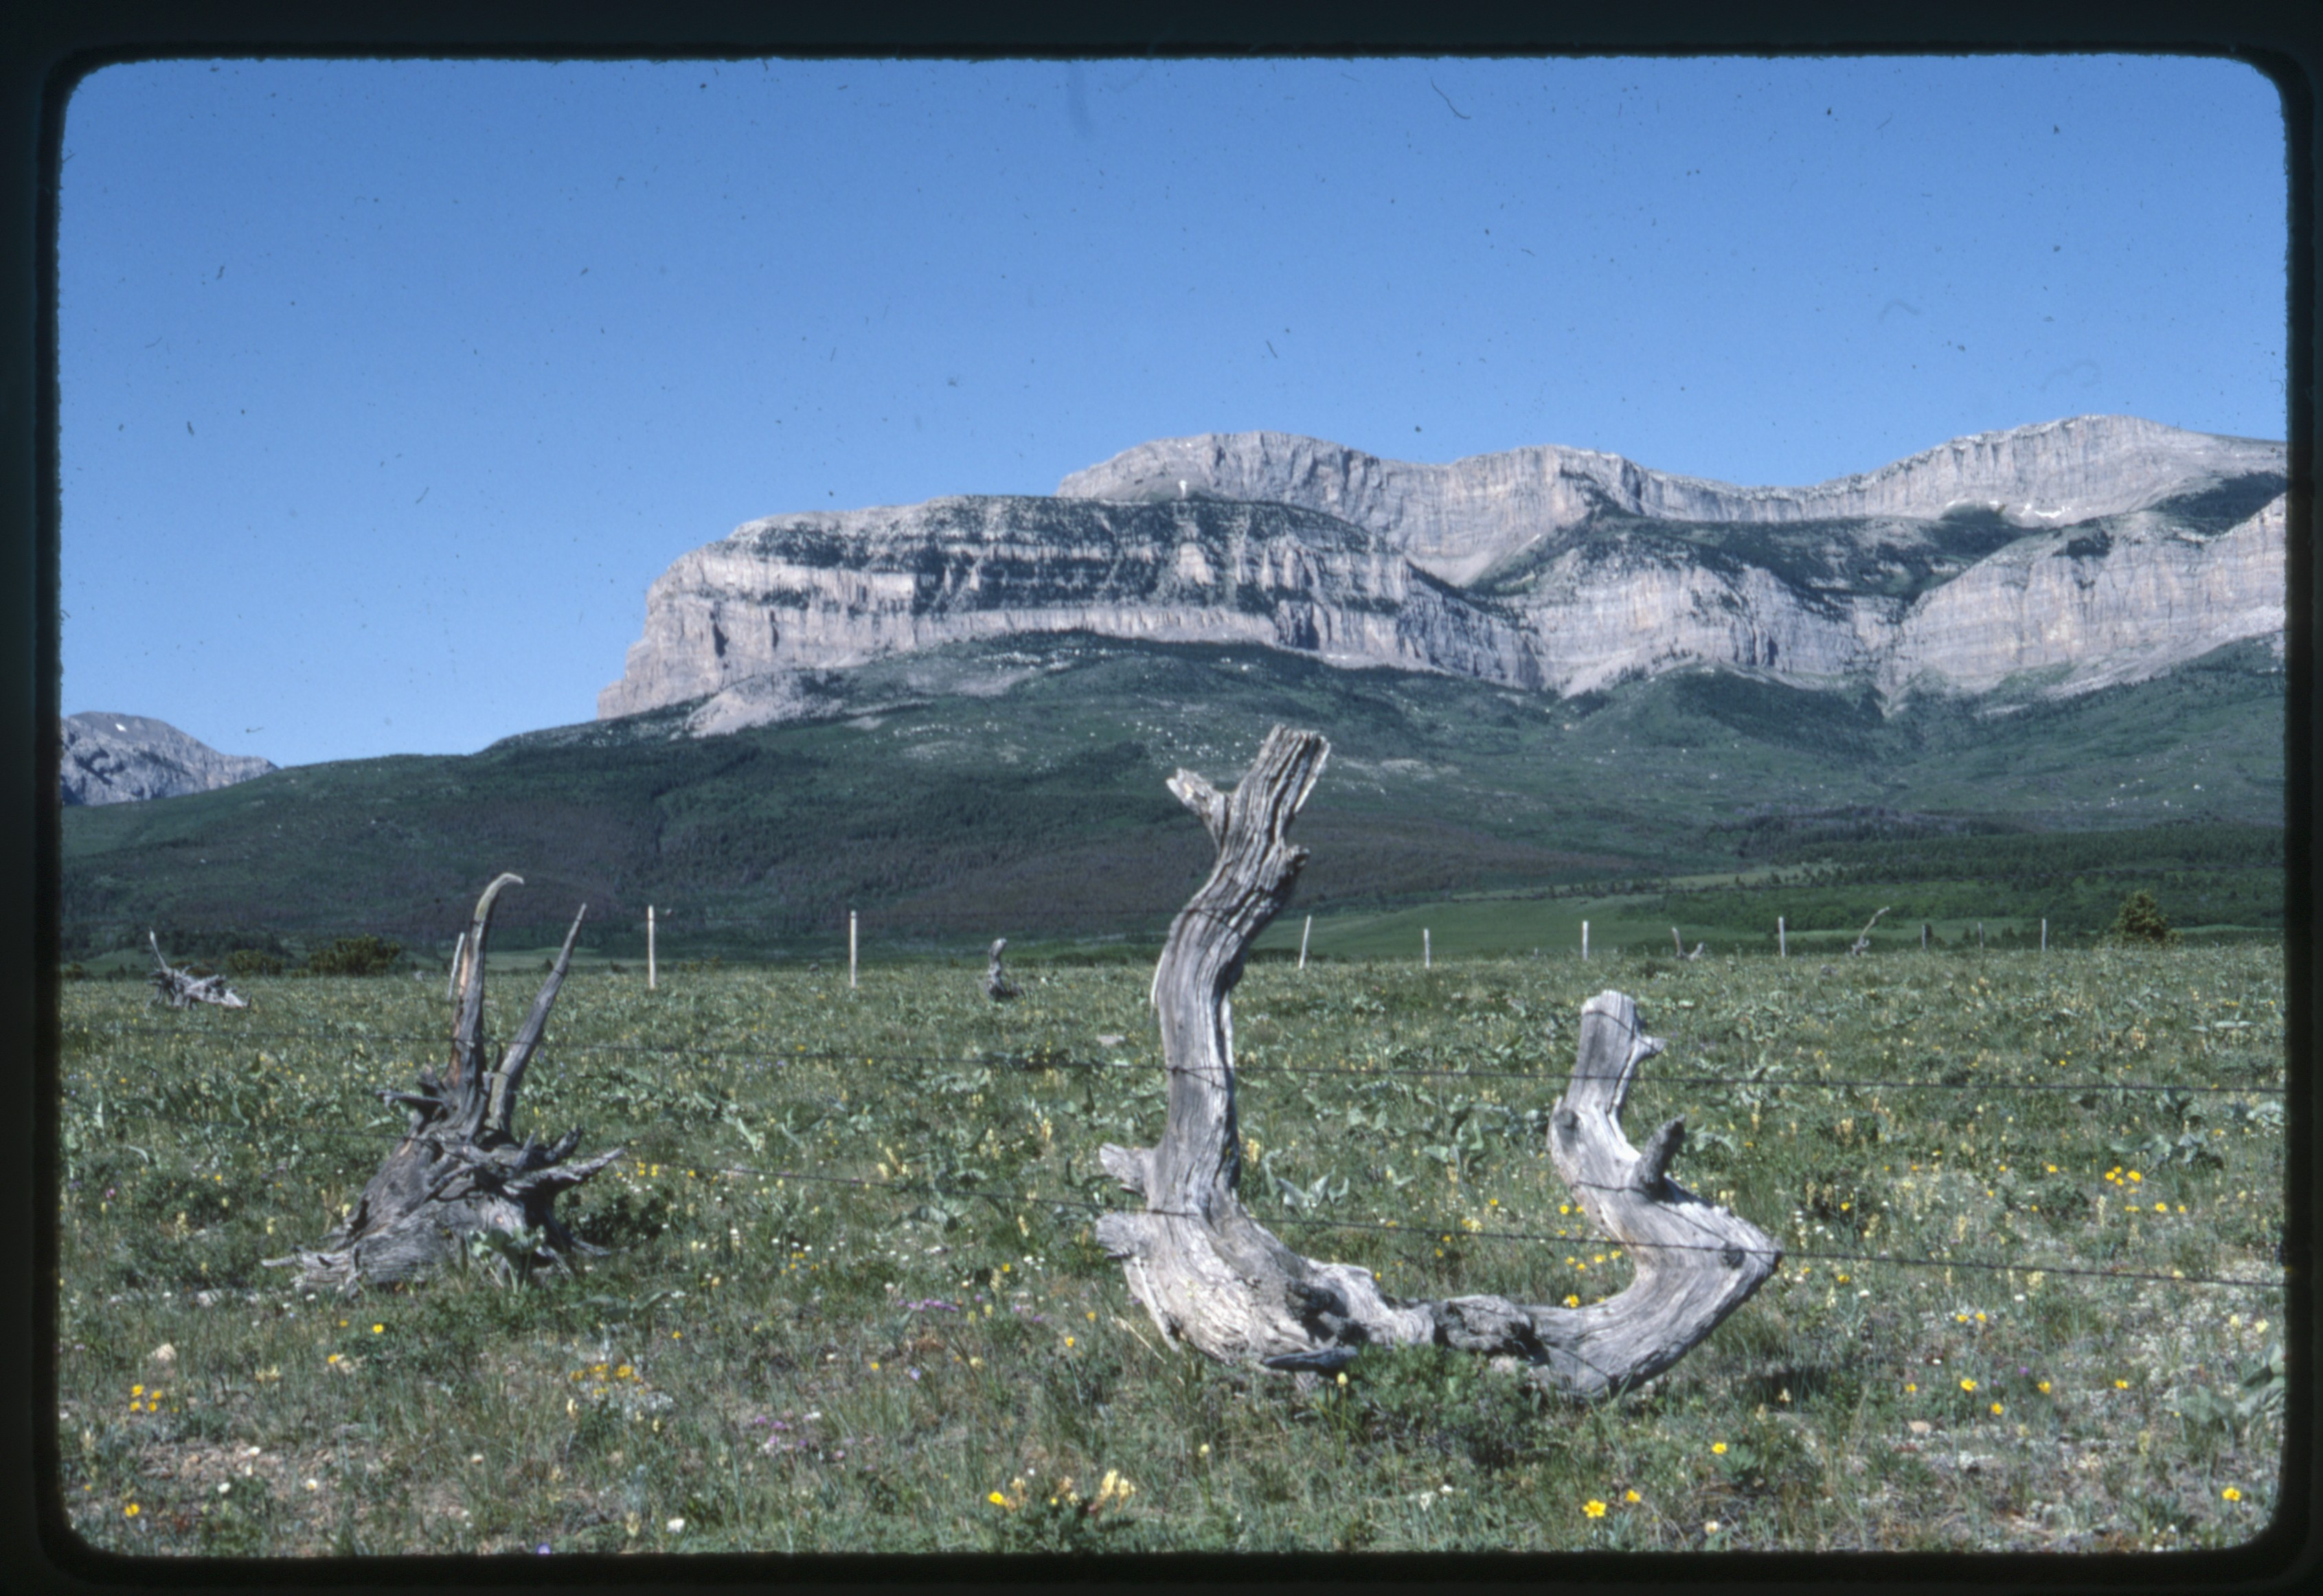 Stumps and fence posts with mountain behind